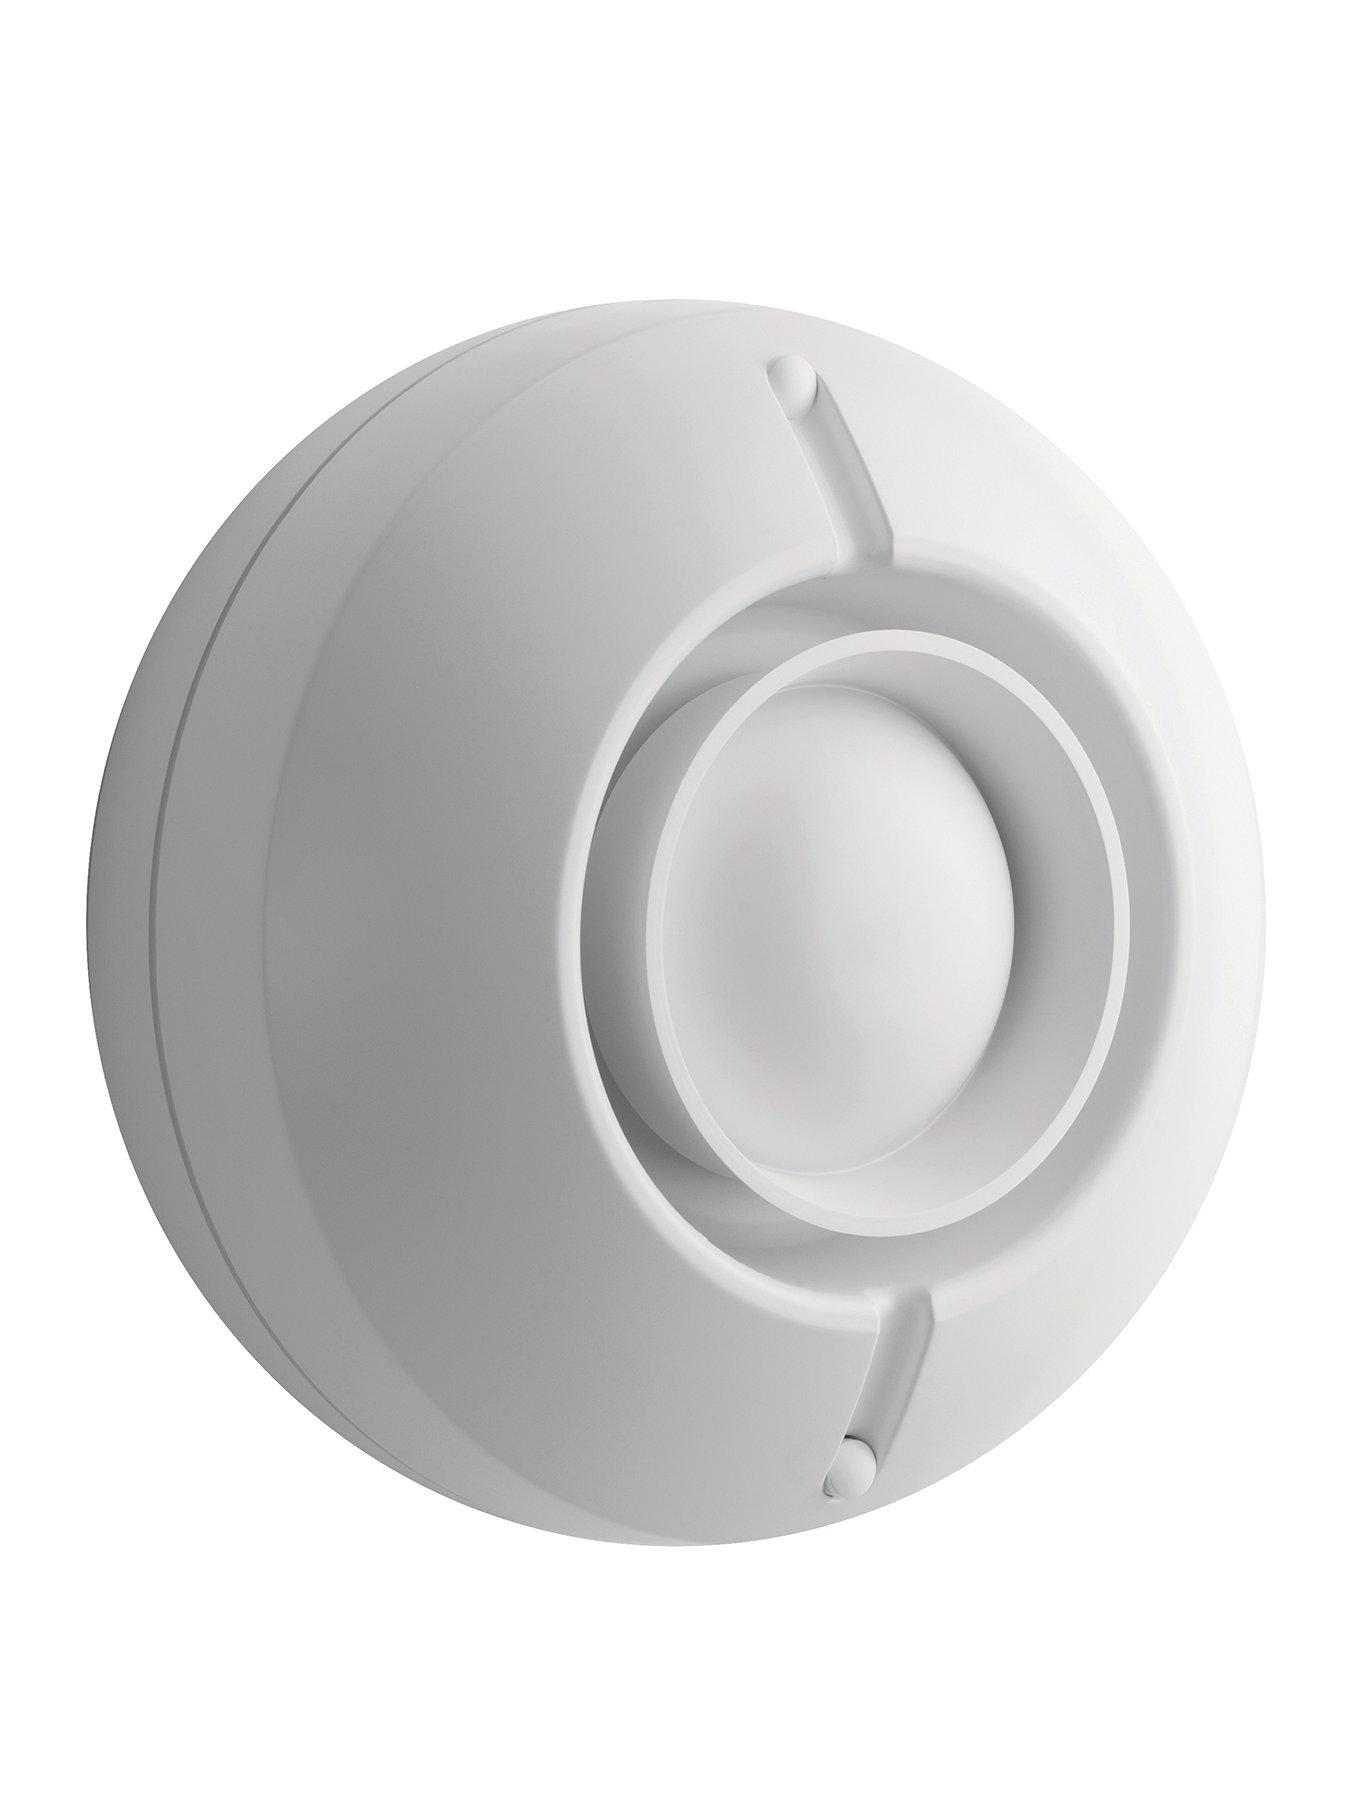 Compare prices for Honeywell Evo Wireless Internal Siren